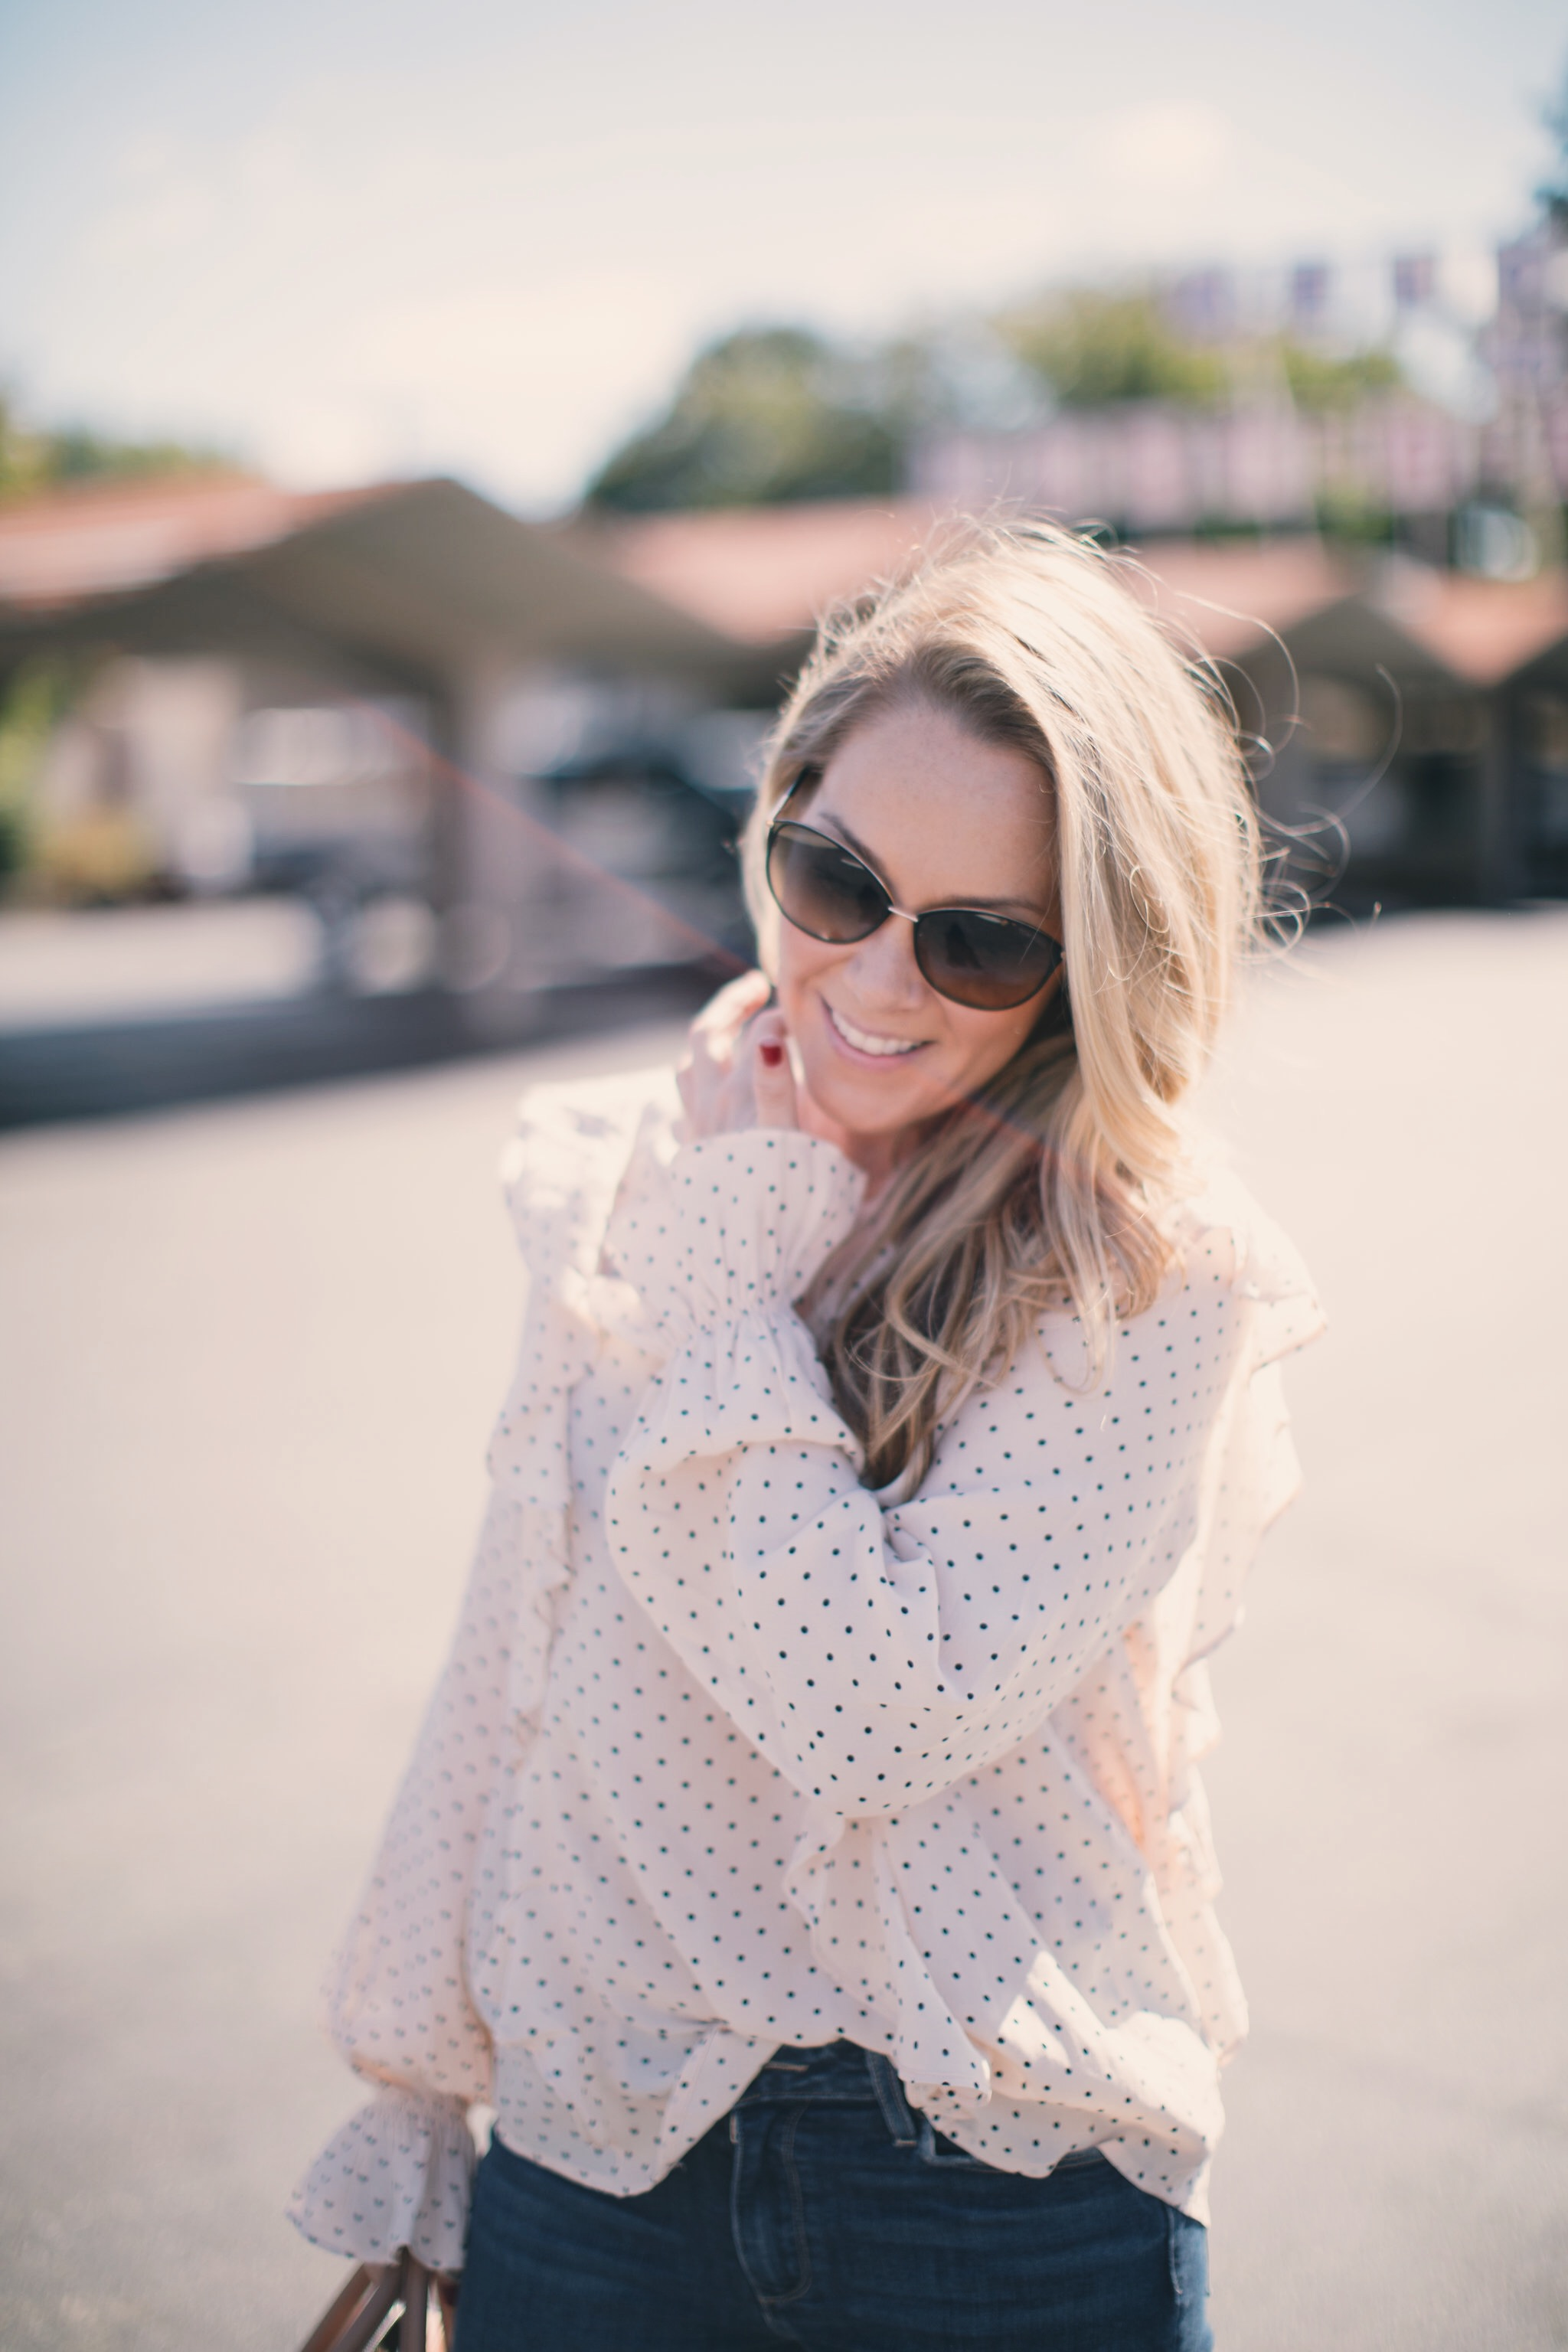 Pretty Little Polka Dot Blouse by North Carolina fashion blogger Every Chic Way